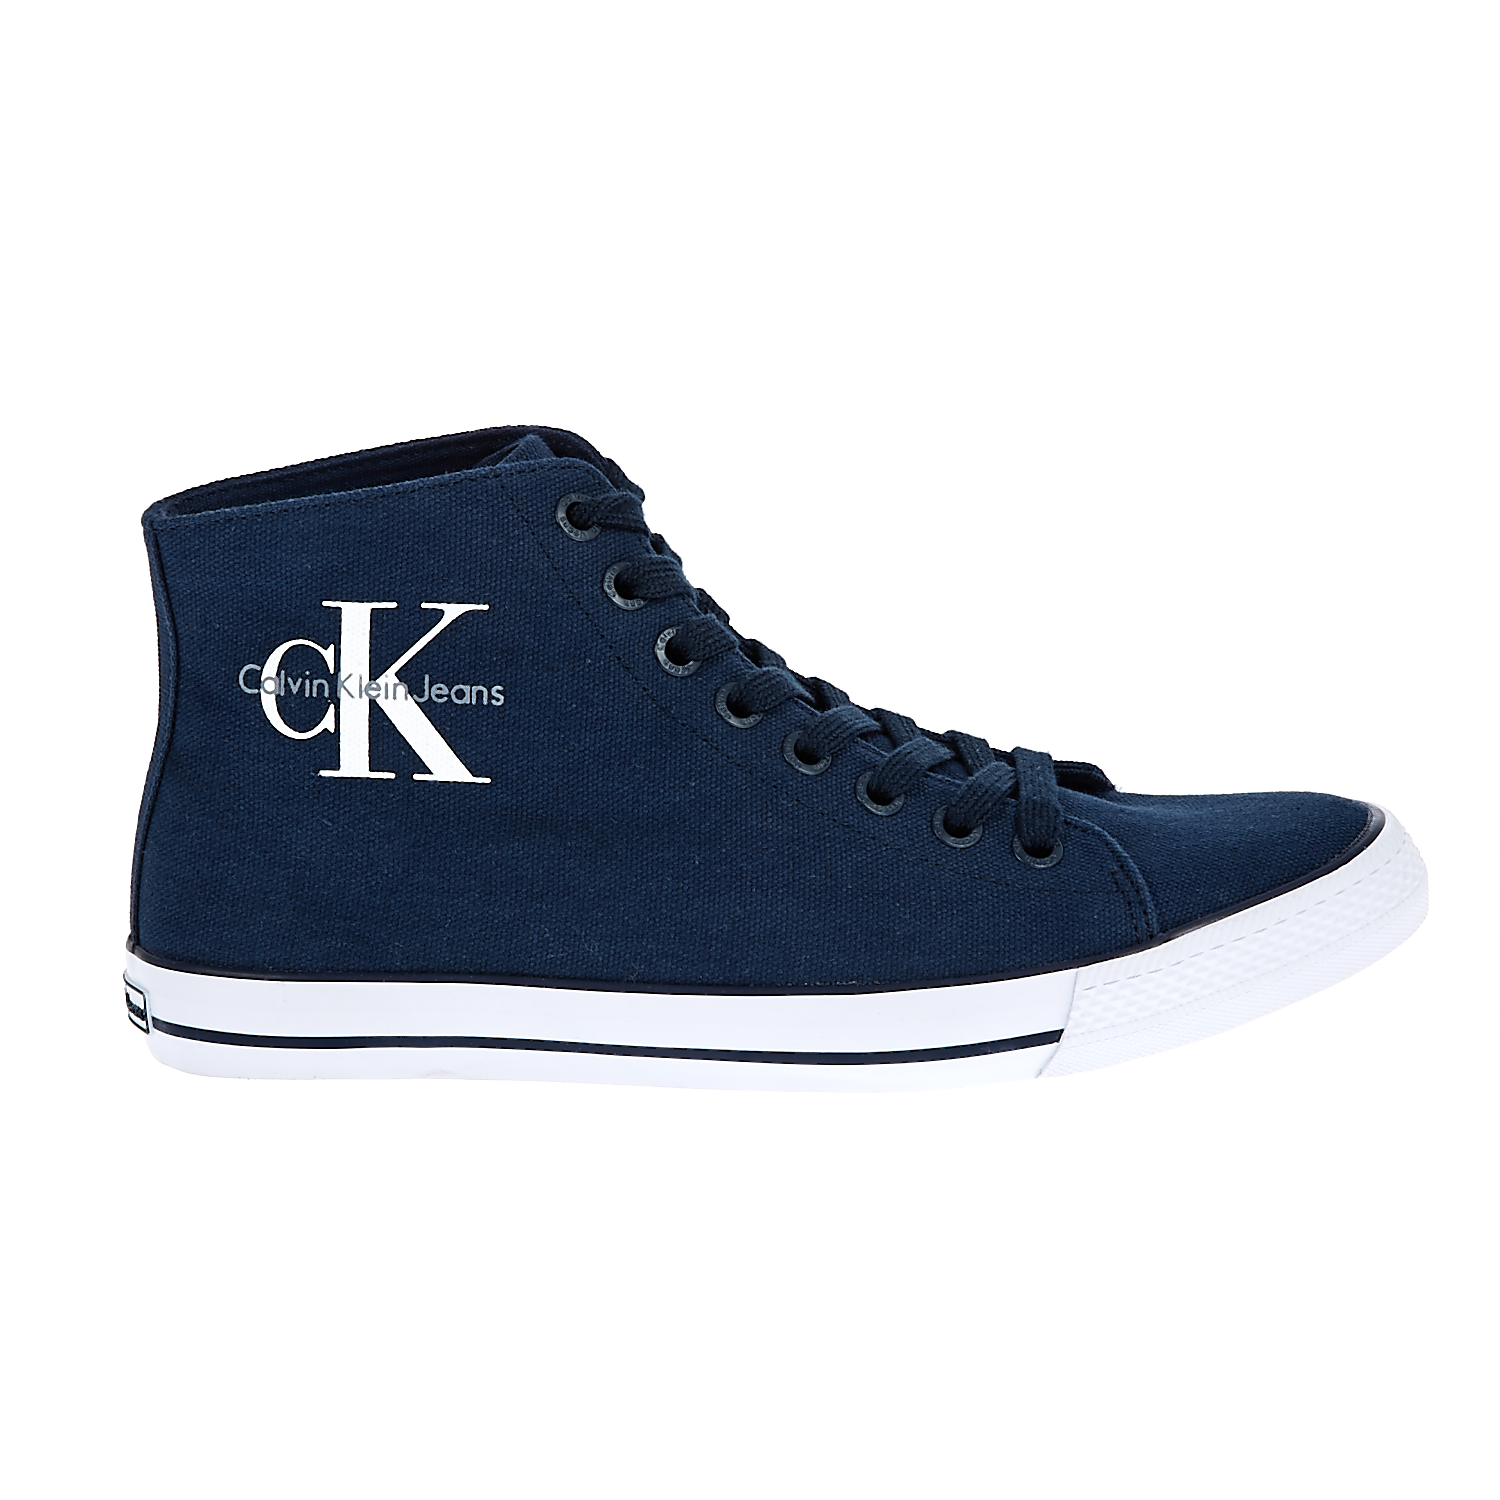 CALVIN KLEIN JEANS - Ανδρικά sneakers Calvin Klein Jeans μπλε ανδρικά παπούτσια sneakers